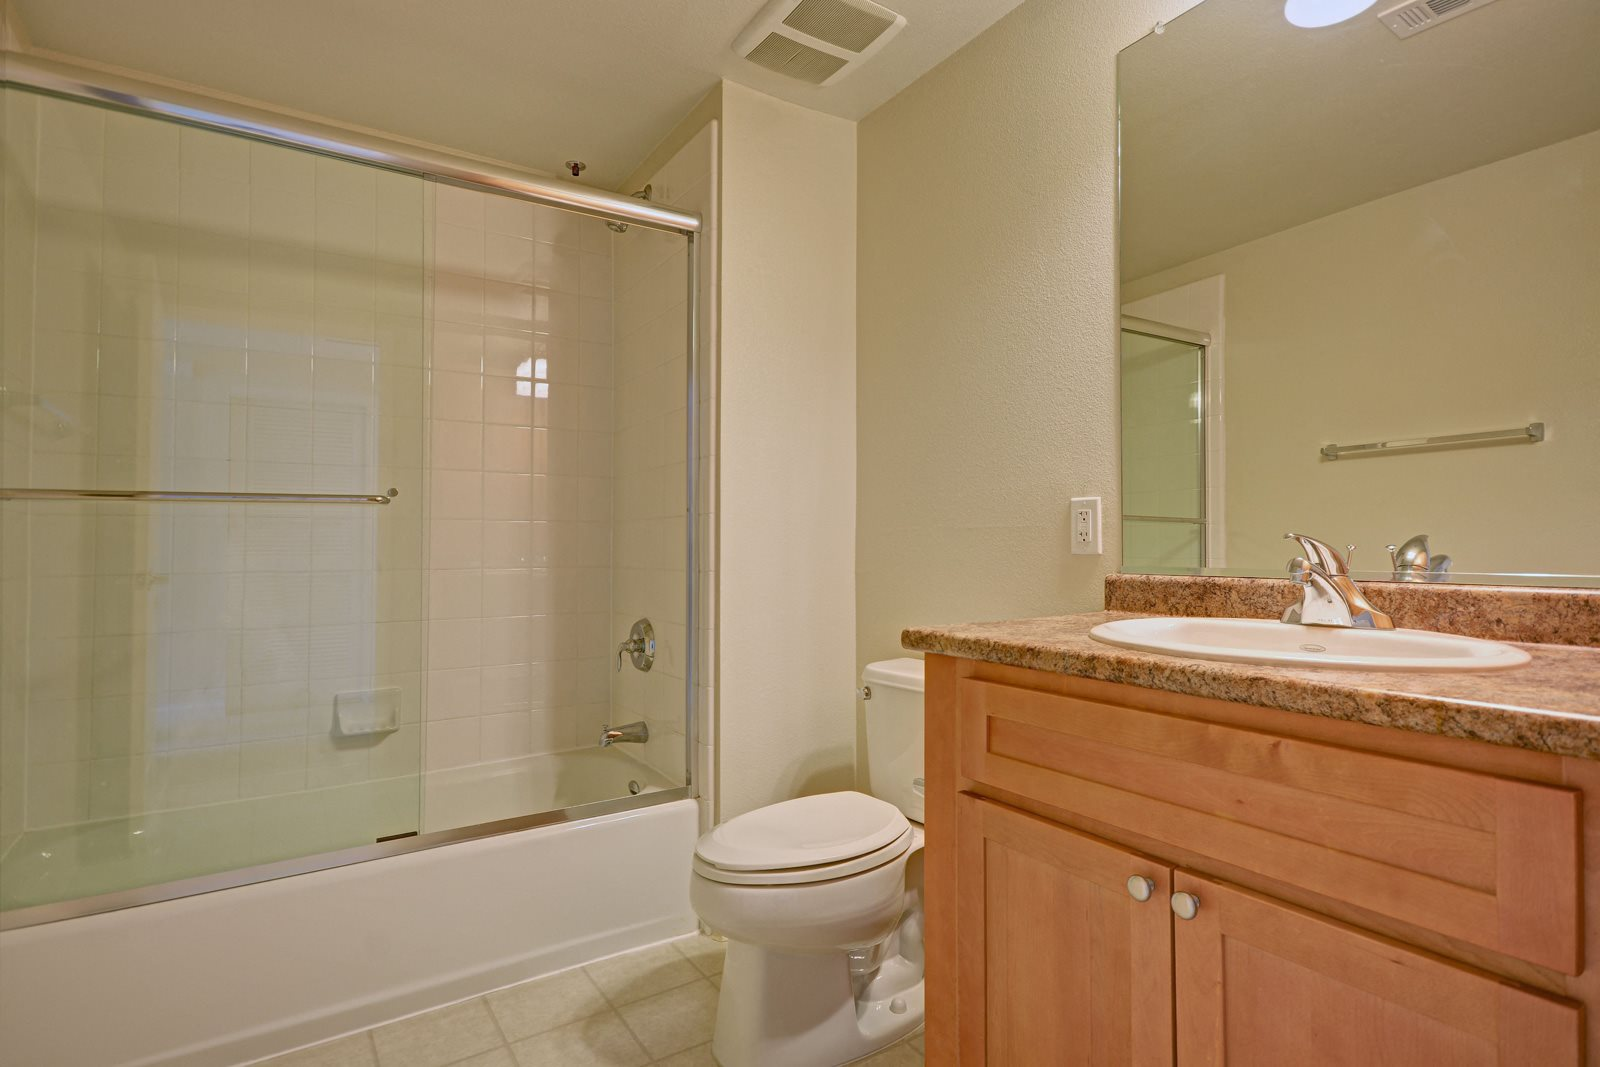 Spacious bathrooms With Marble Counter tops at Villa Montanaro,203 Coggins Drive Pleasant Hill, CA 94523